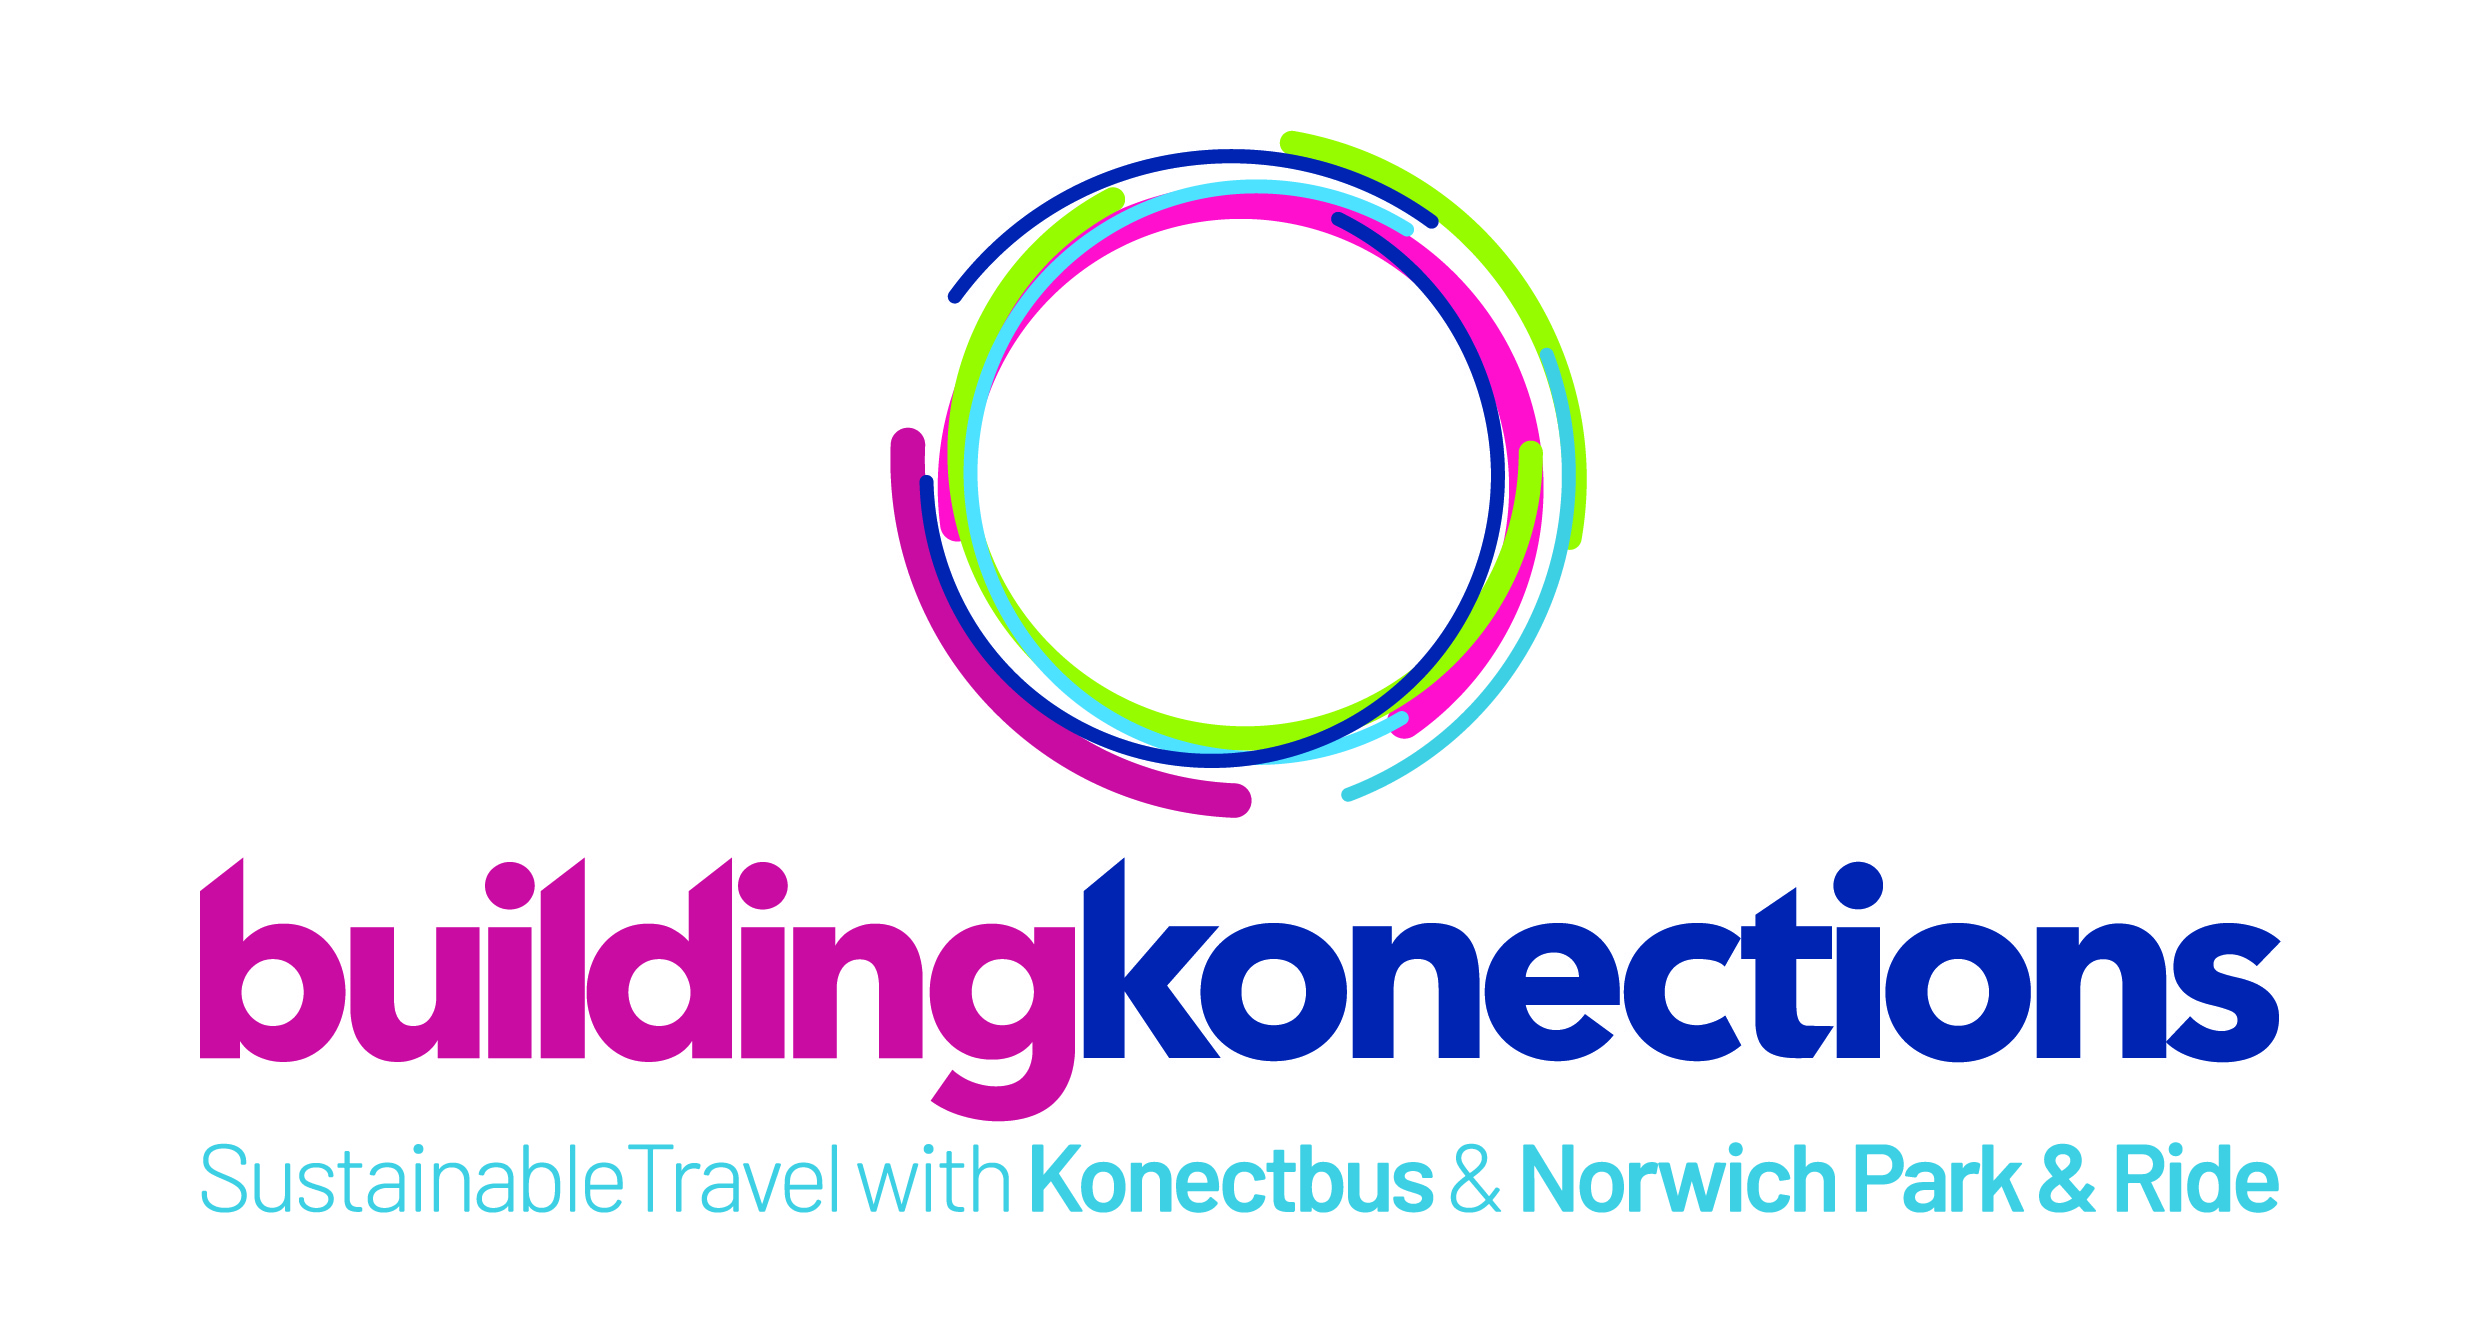 Image of the building konections logo